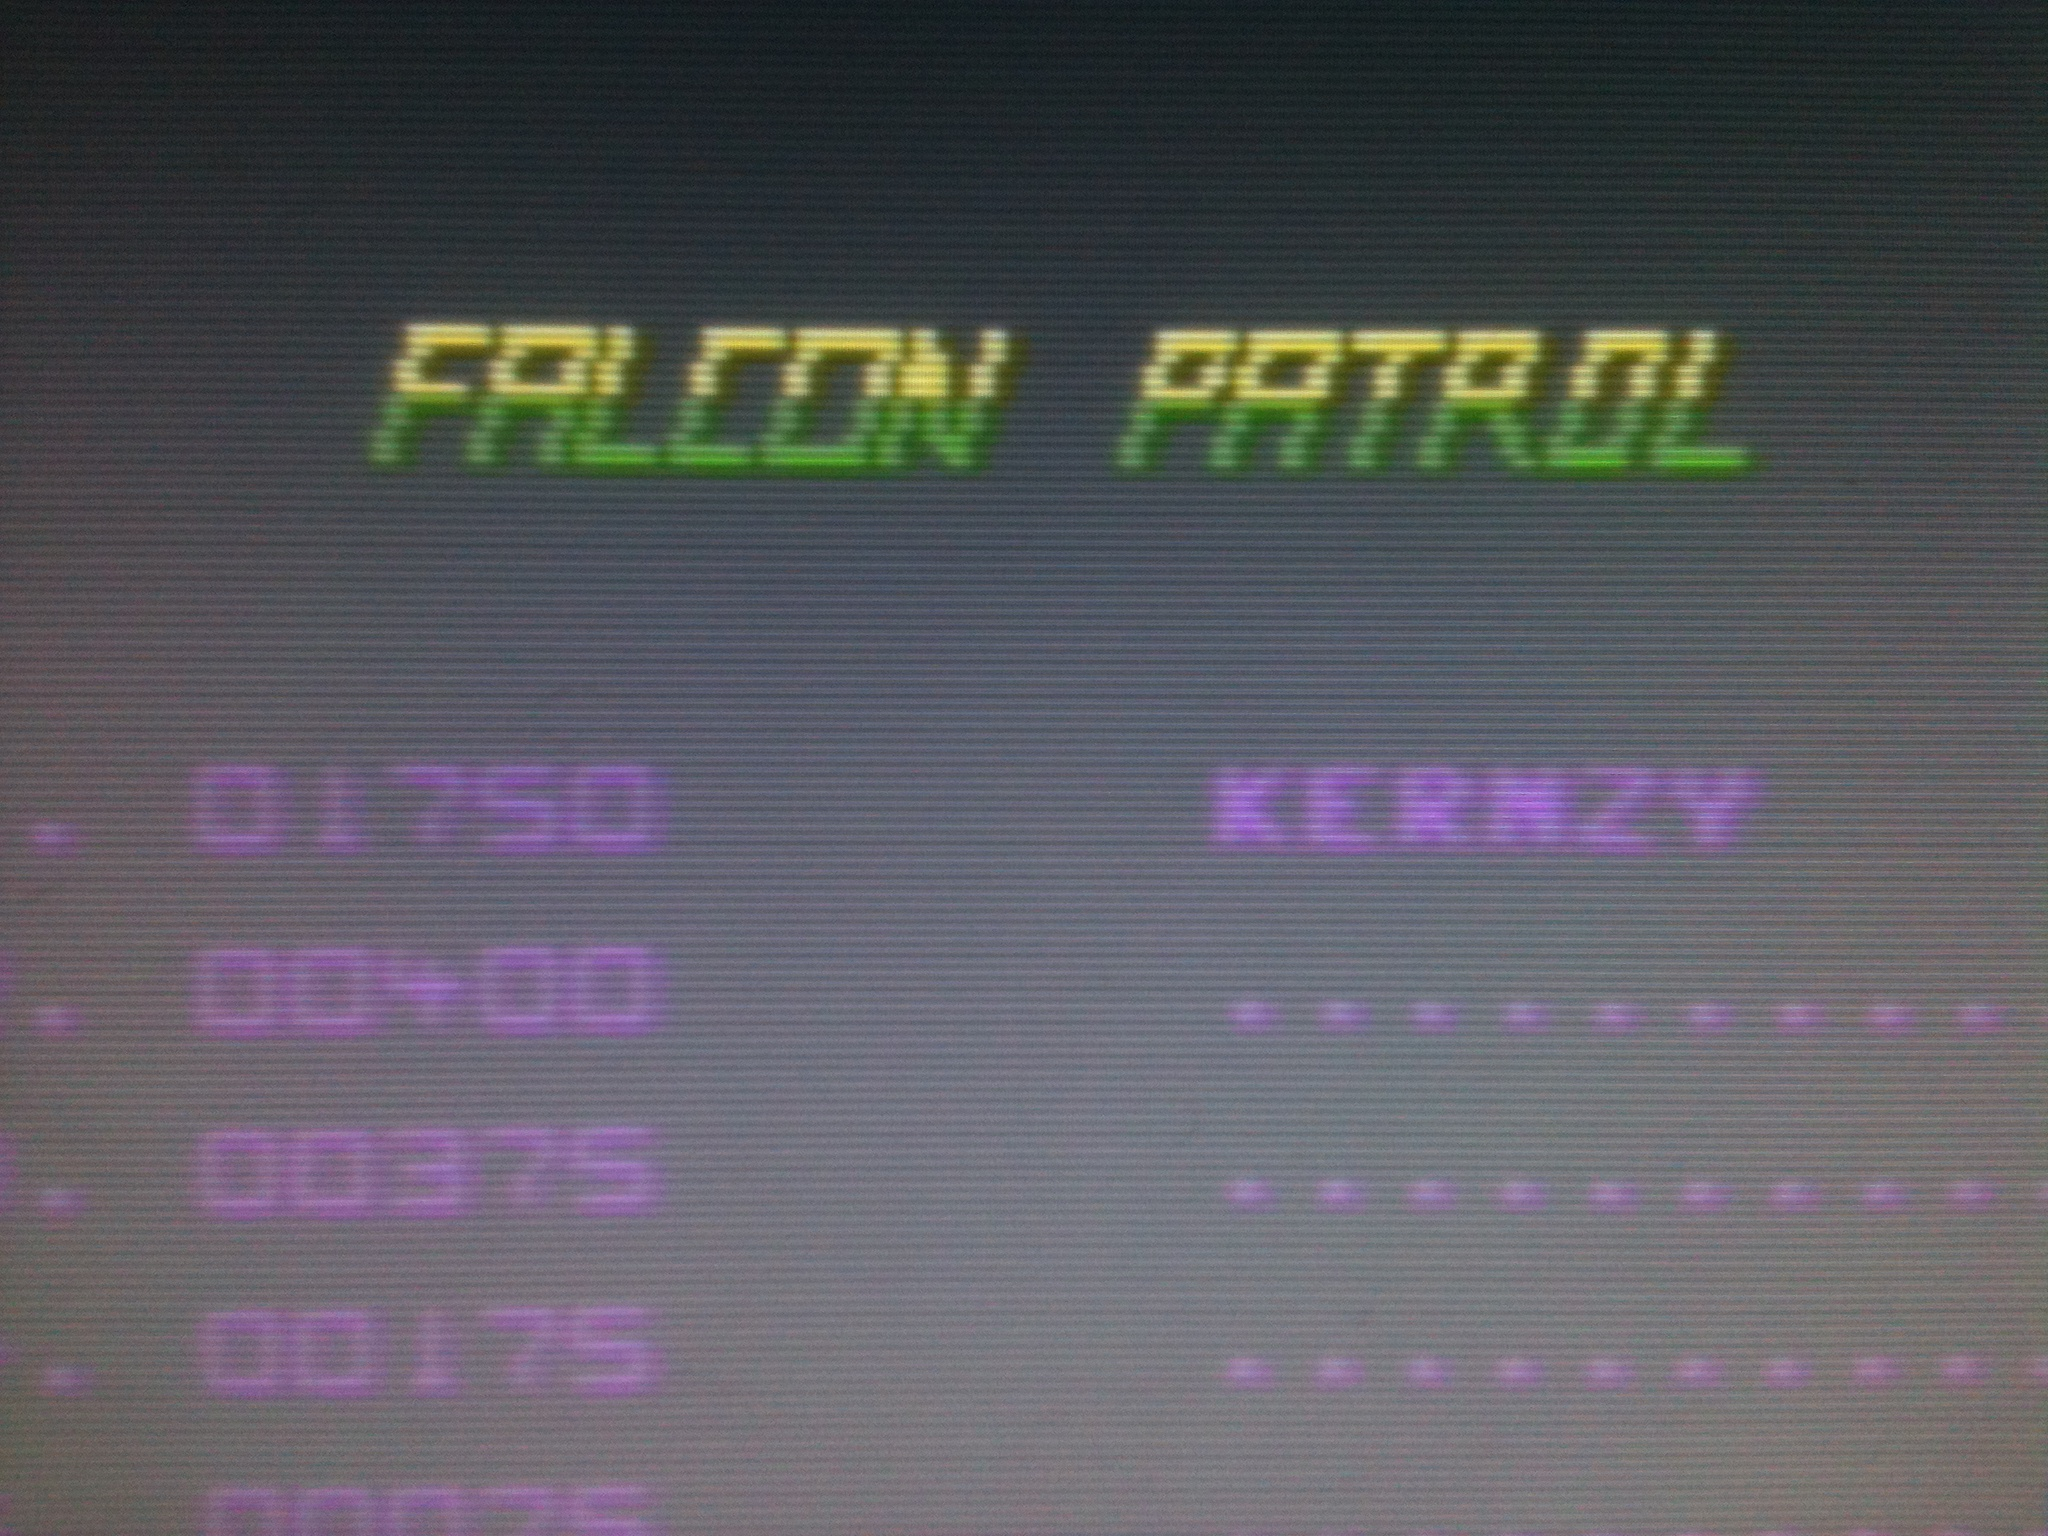 kernzy: Falcon Patrol (Commodore 64 Emulated) 1,750 points on 2015-11-19 17:16:19